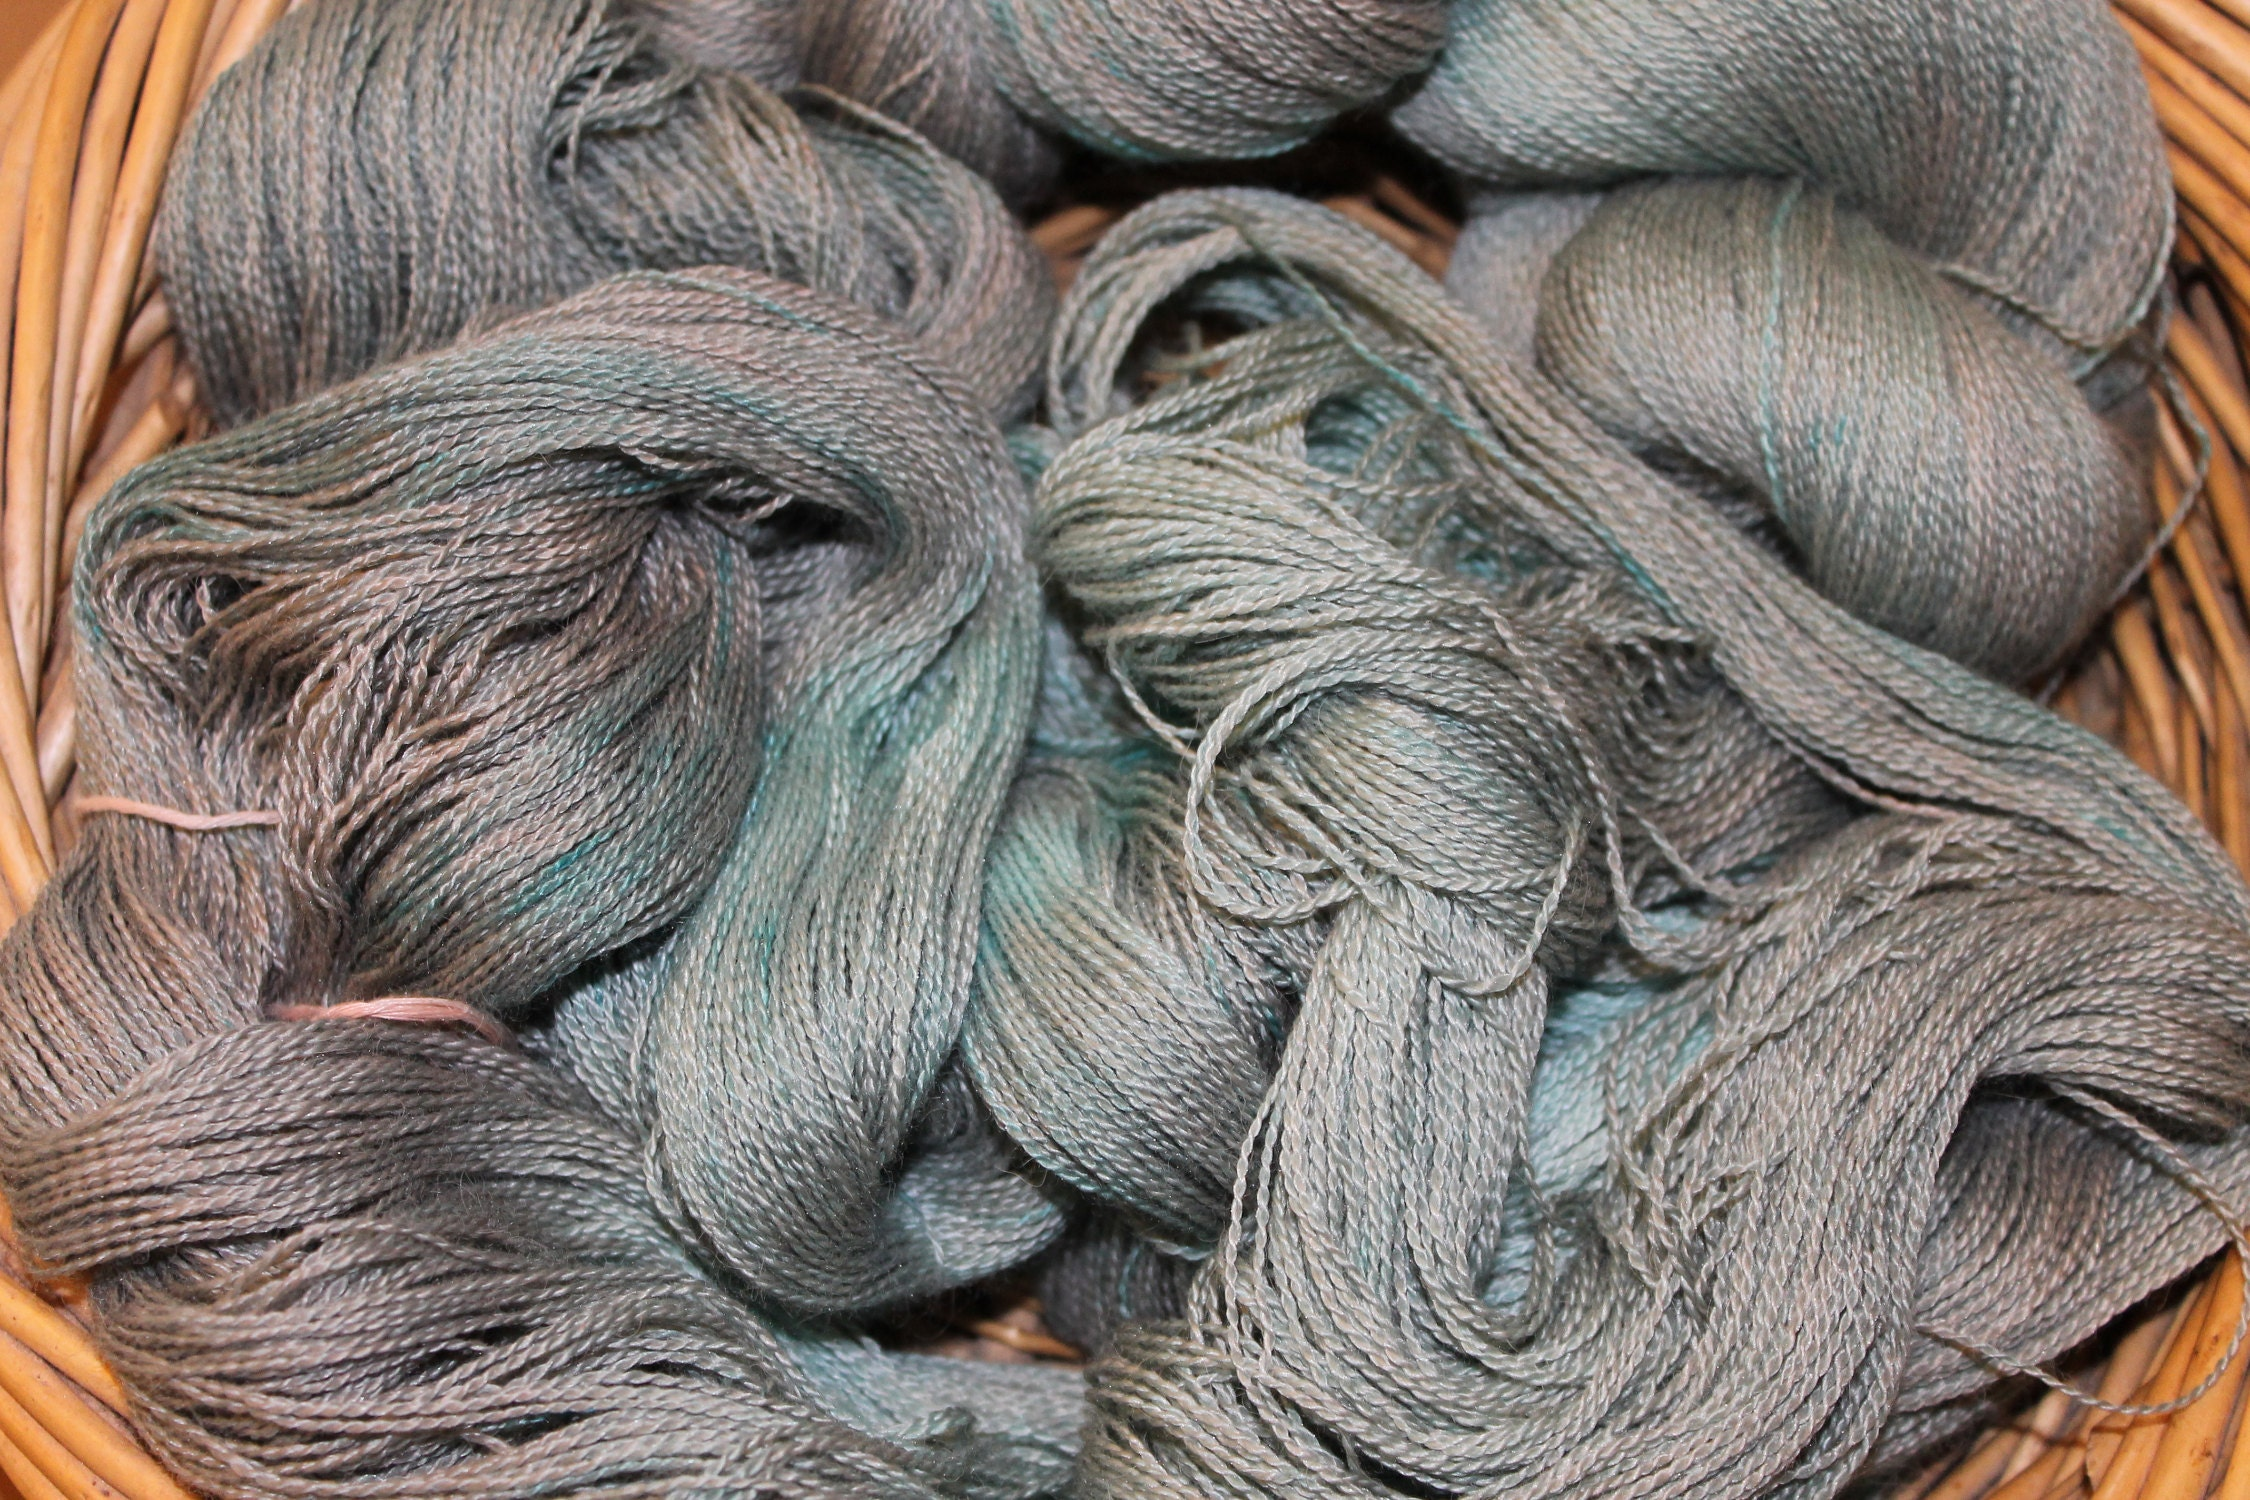 This is the finished yarn colour